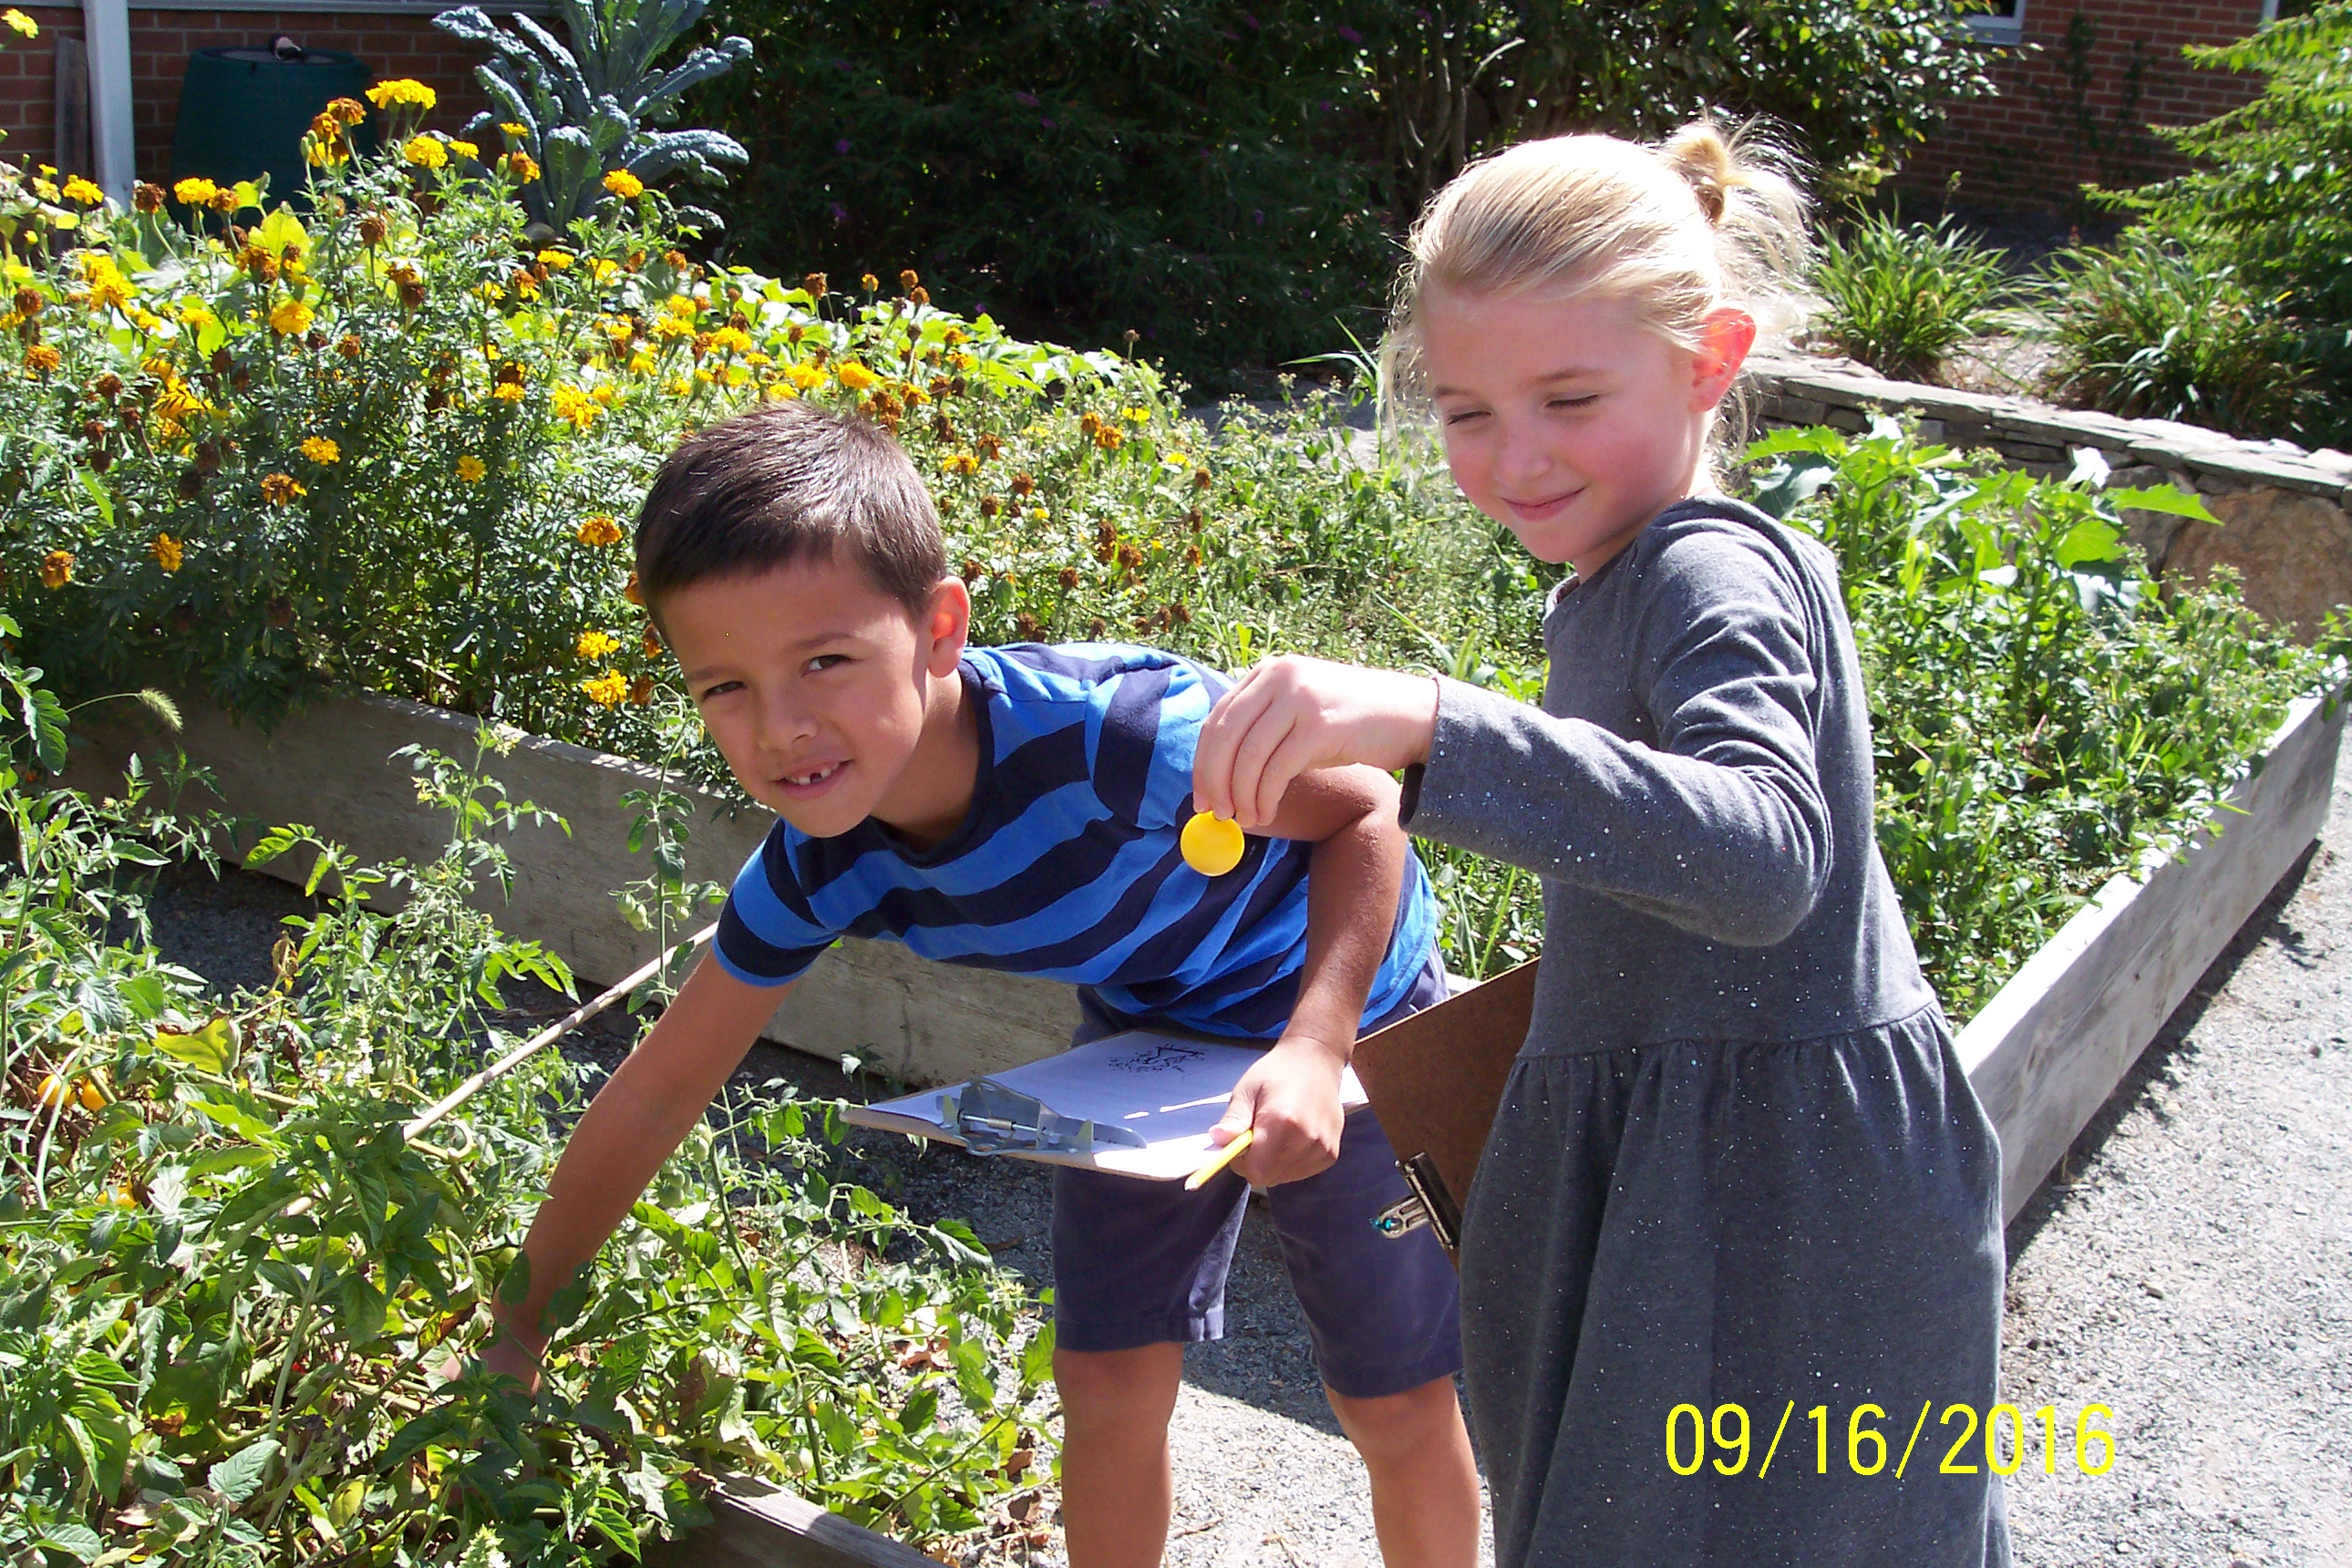 Students picking flowers from the Outdoor Learning Center